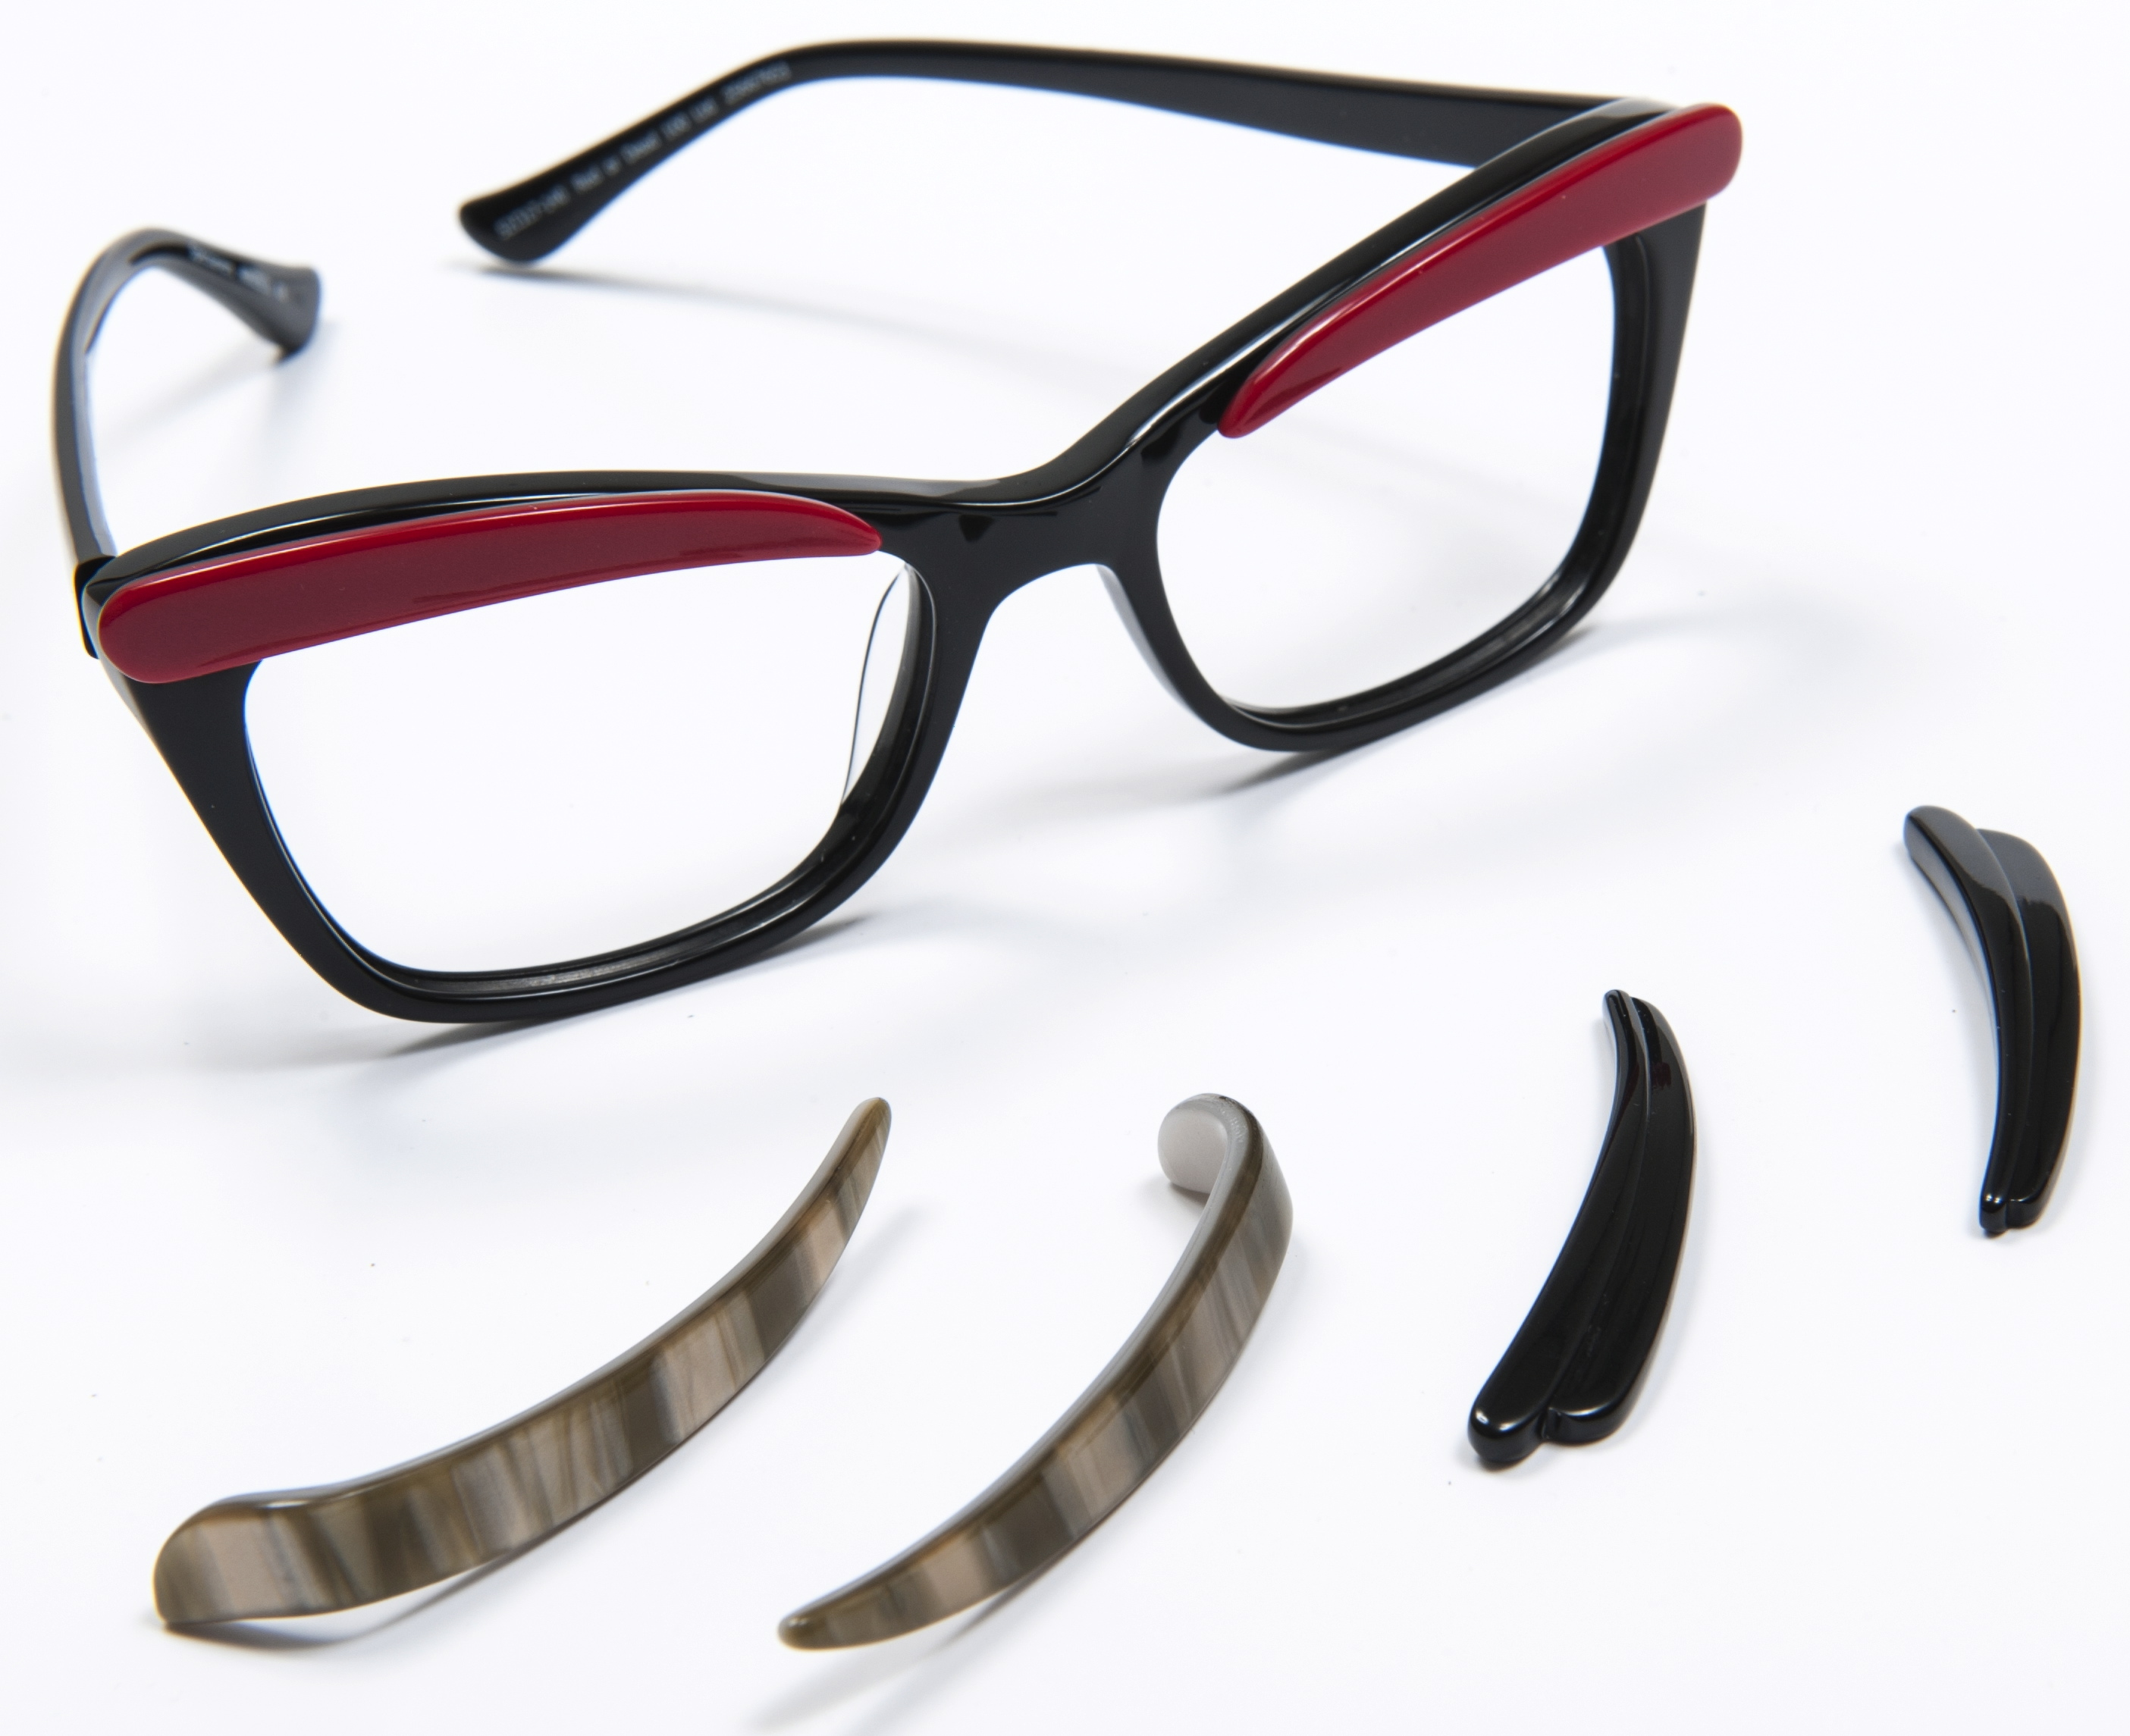 Glasses Frames Eyebrows : New glasses? Specsavers SS14 fashion frames launches So ...